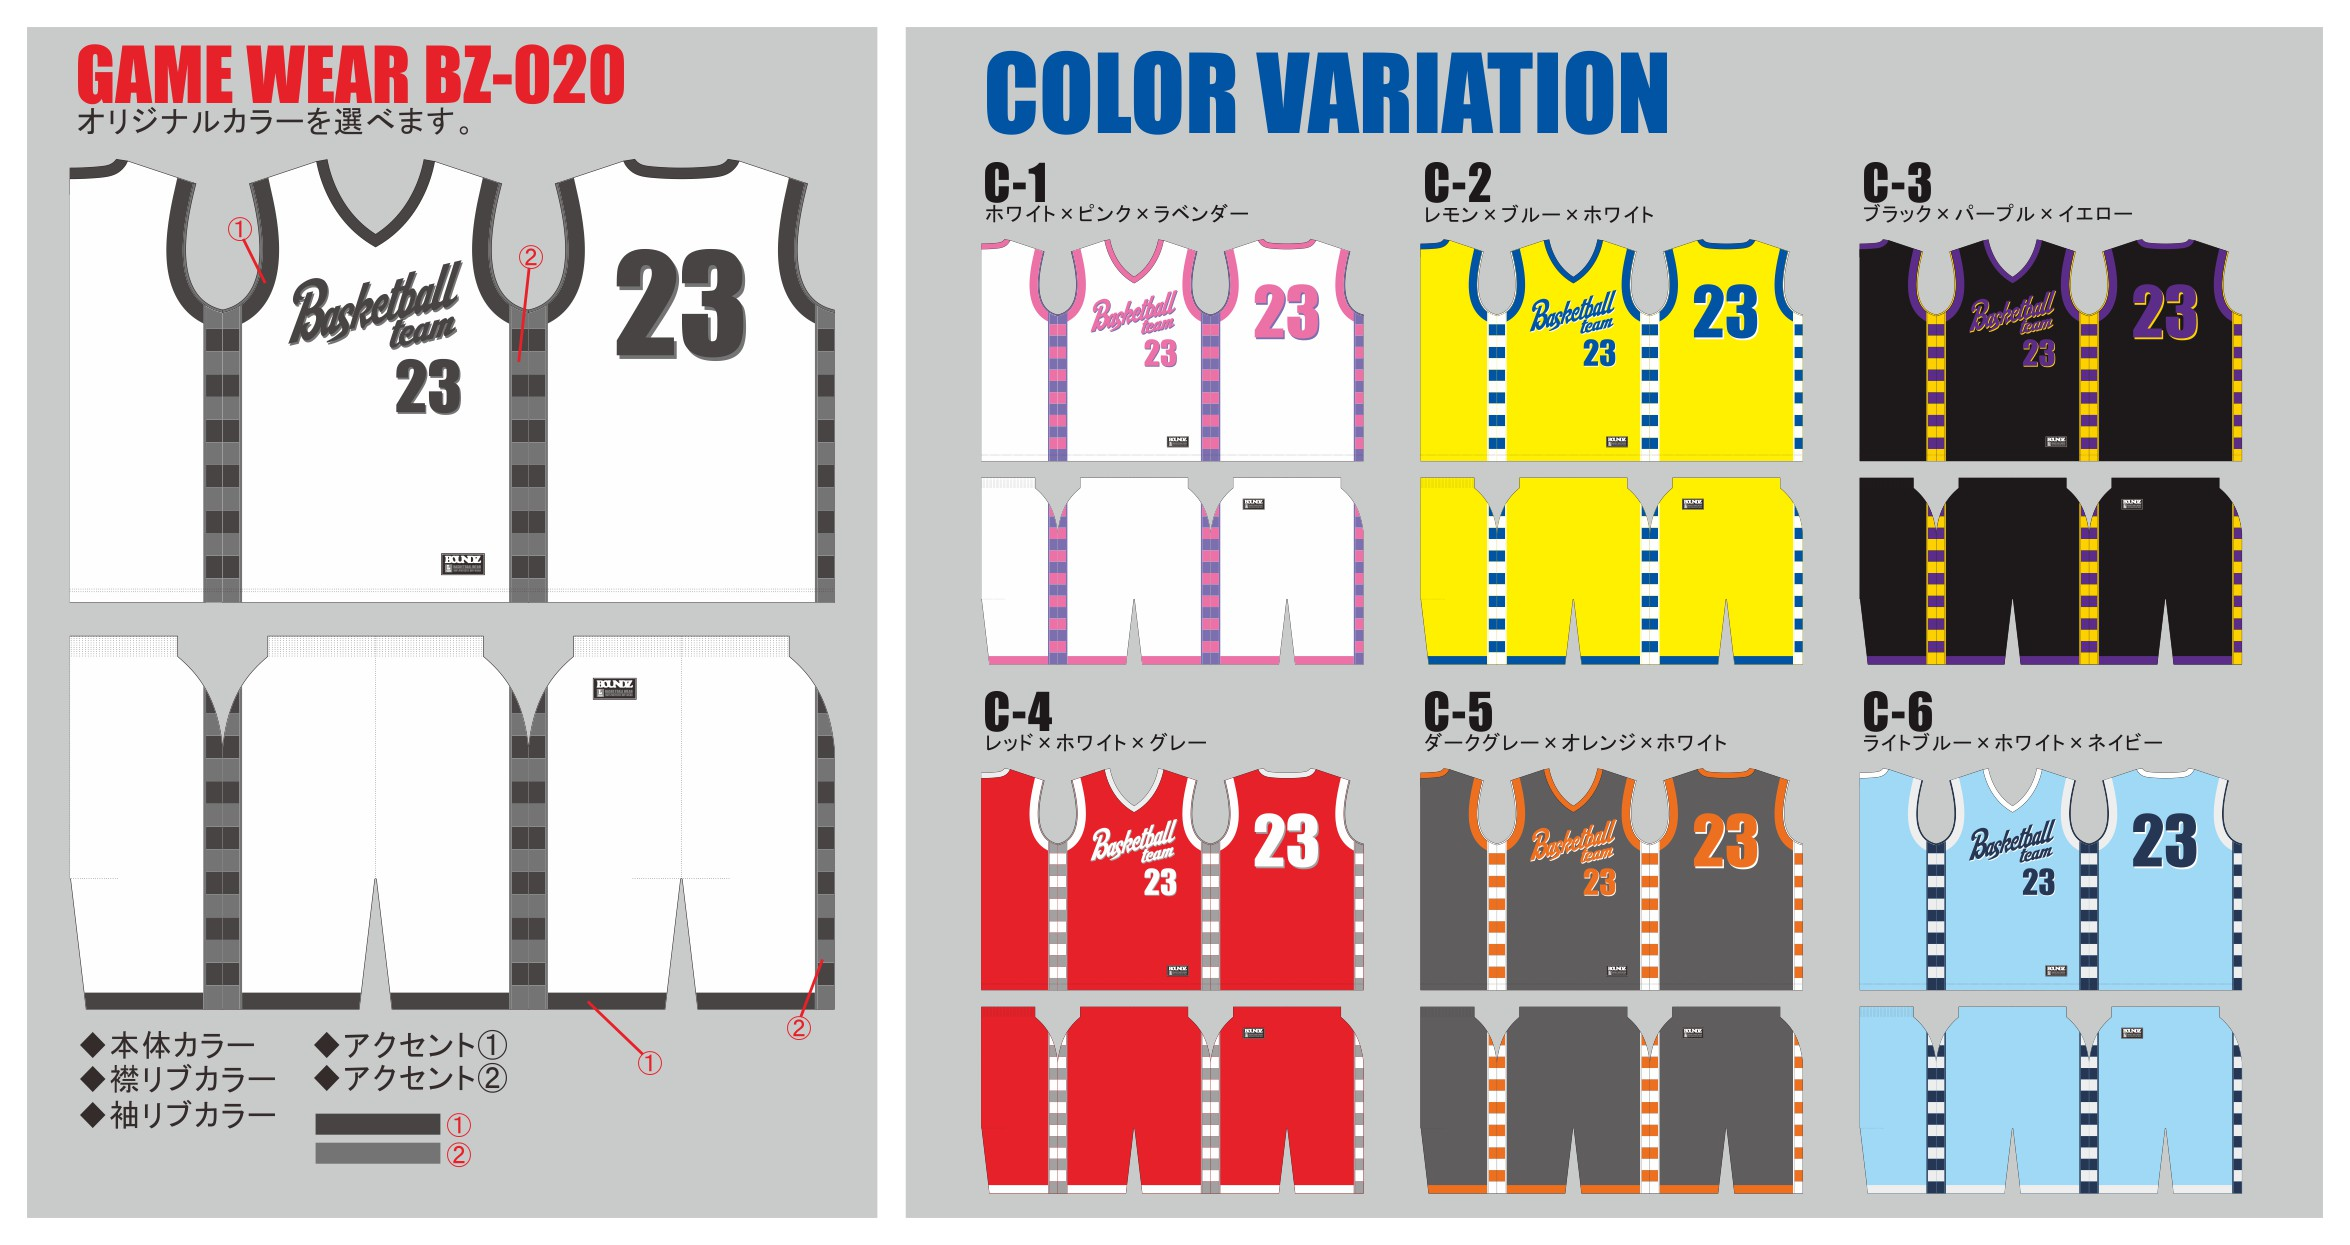 GAME_WEAR_BZ020_color_shirt